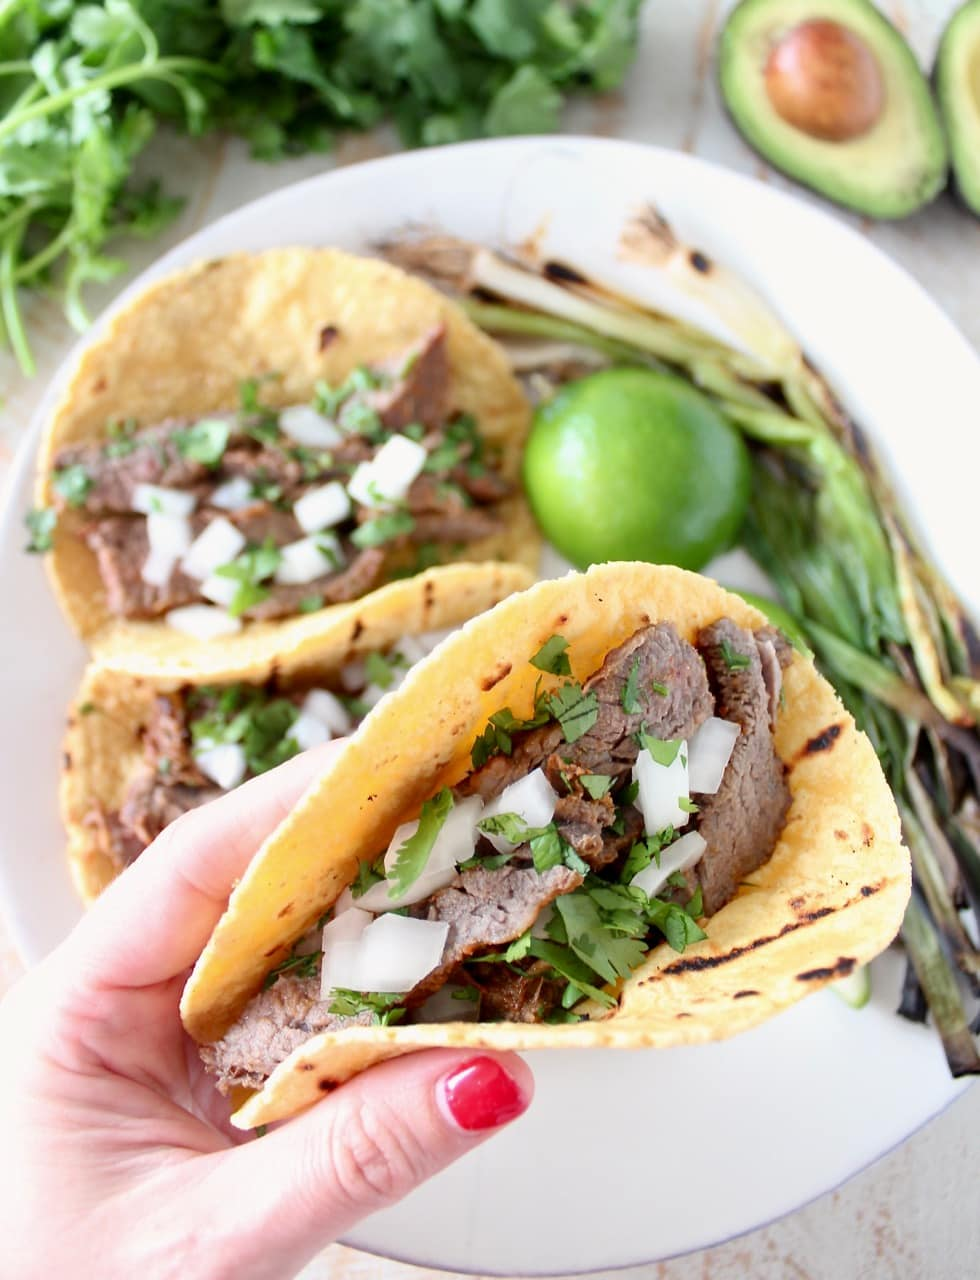 Carne Asada Tacos with Onions, Cilantro and Grilled Green Onions